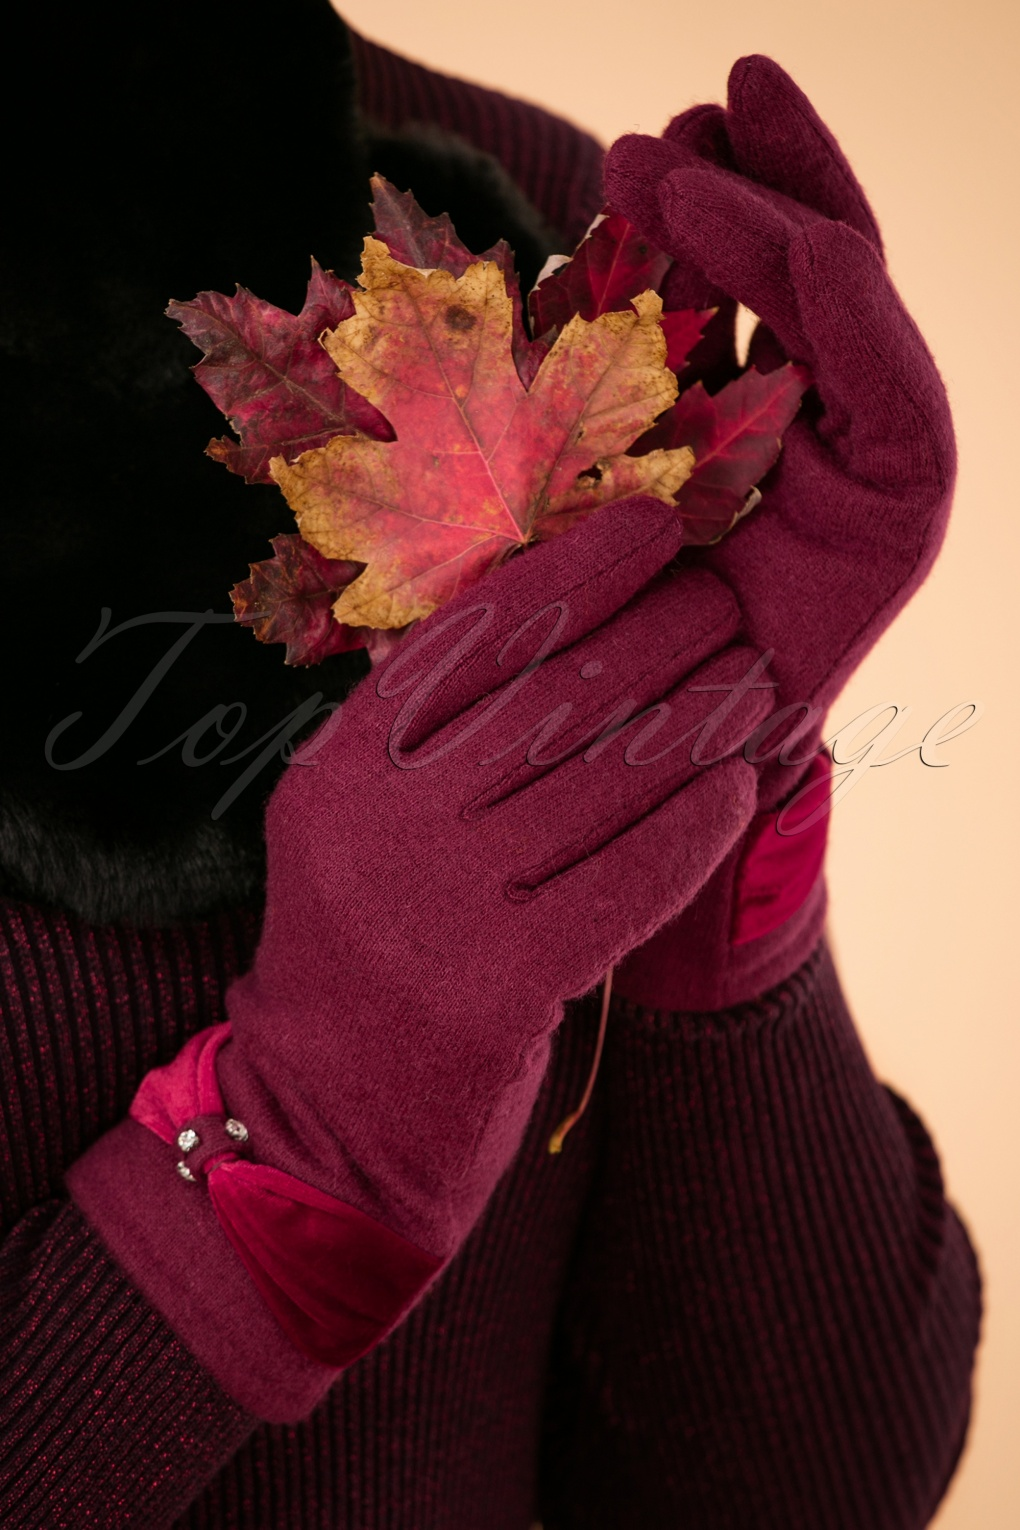 Vintage Style Gloves- Long, Wrist, Evening, Day, Leather, Lace 50s Sasha Wool Gloves in Wine £21.73 AT vintagedancer.com